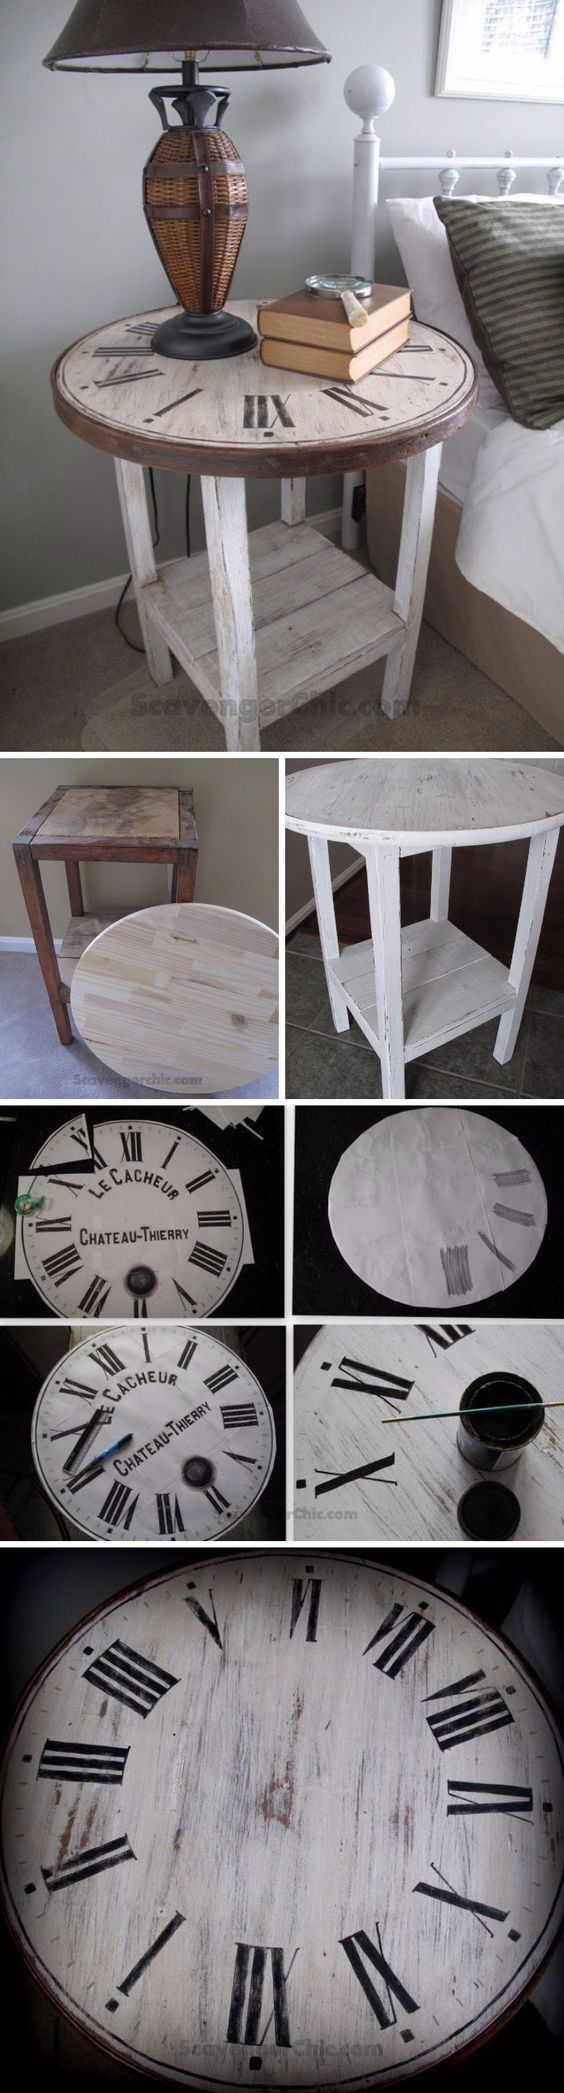 DIY Vintage Clock Table from a Flea Market Find.  Several furniture re-do ideas